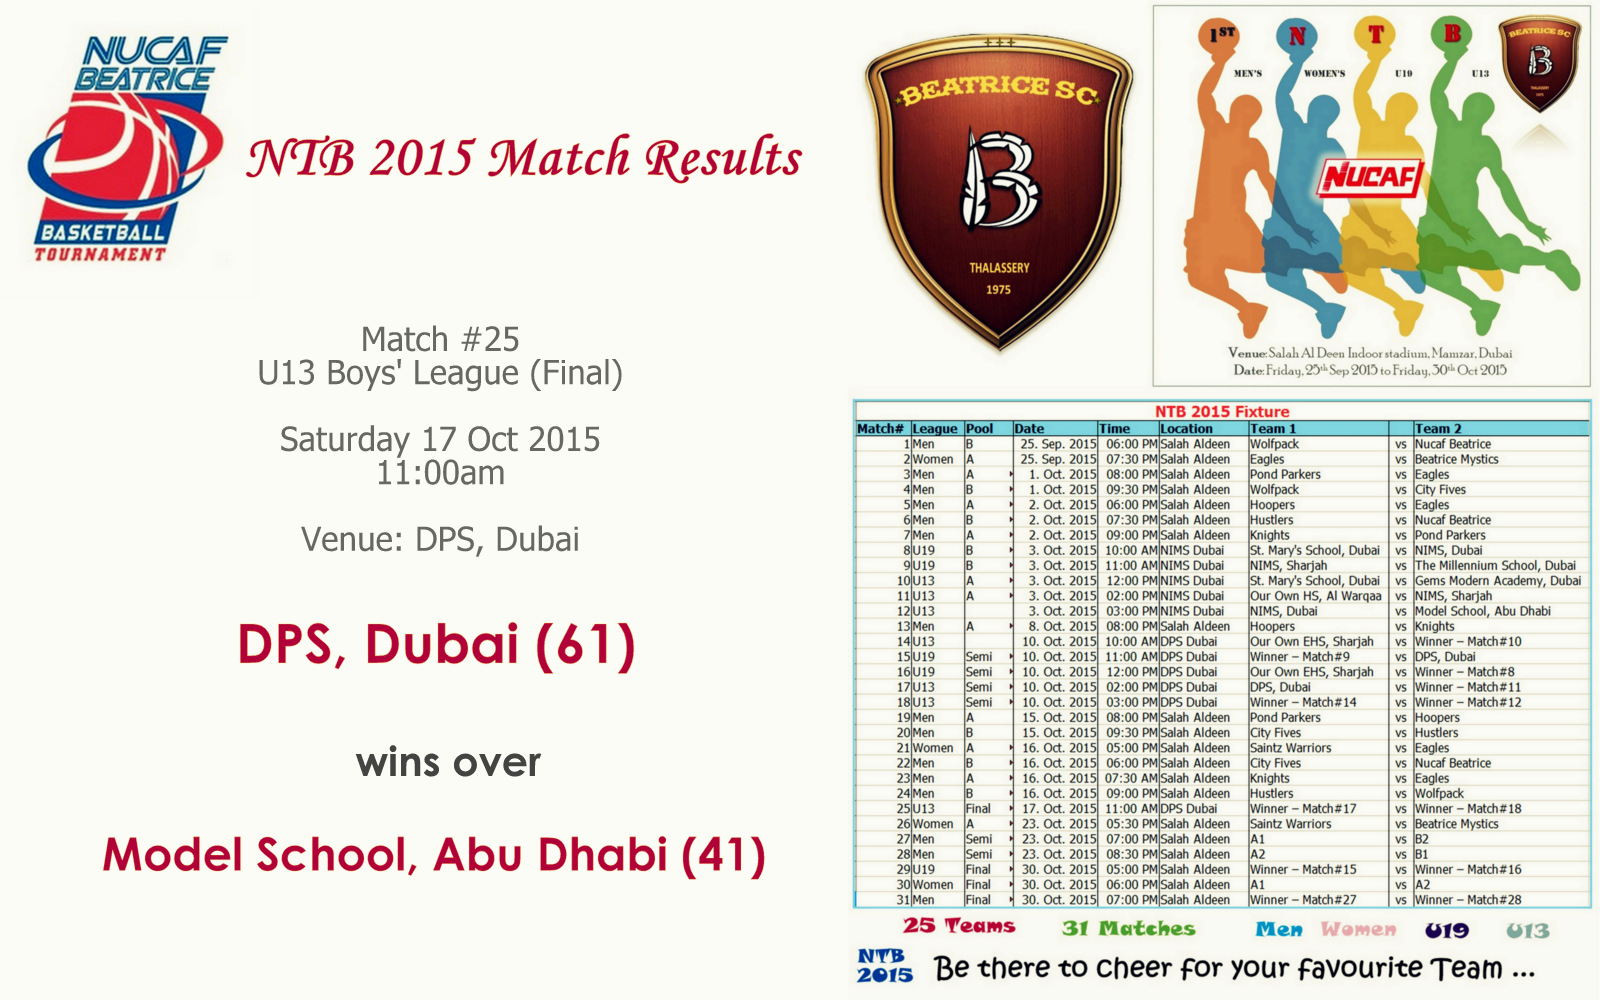 NTB 2015 – Match #25 (U13 Final) | DPS, Dubai (61) Vs Model School, Abu Dhabi (41)